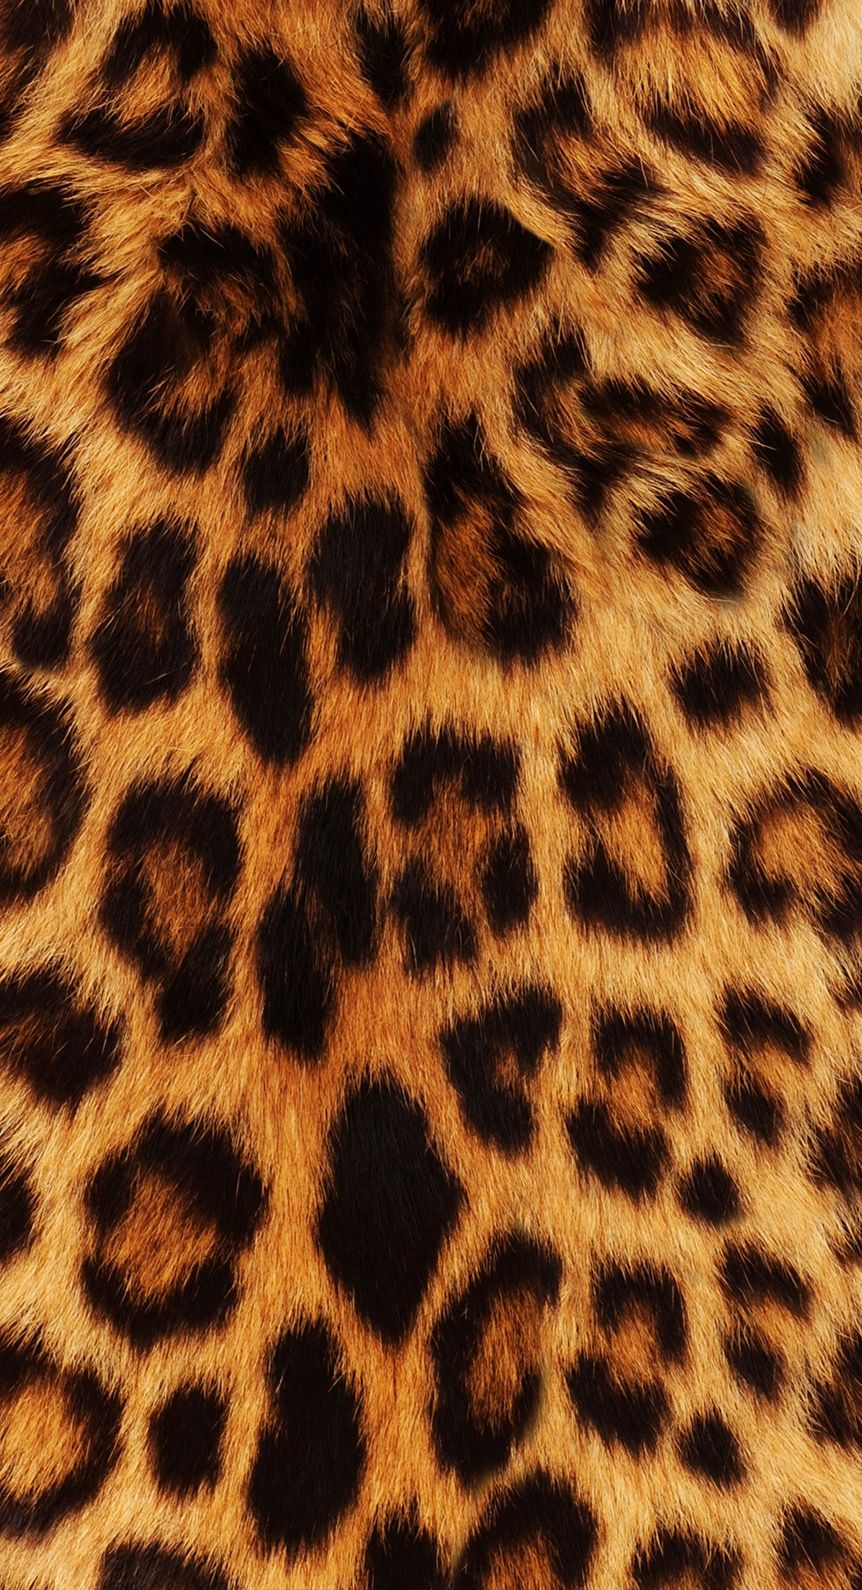 Sfondi per iphone leopardato